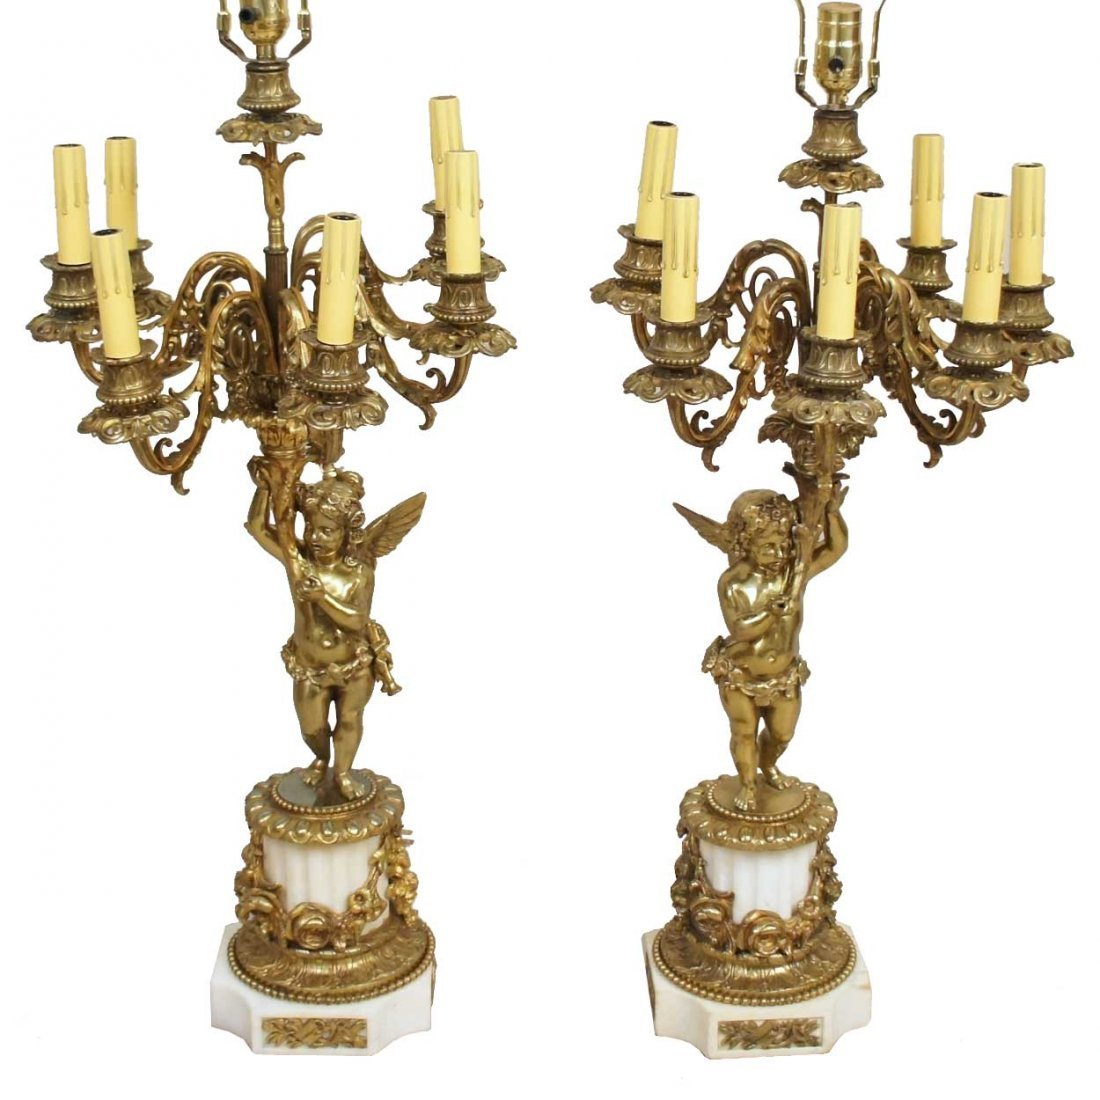 21: A Pair of French Louis XVI Style Bronze Figural Can